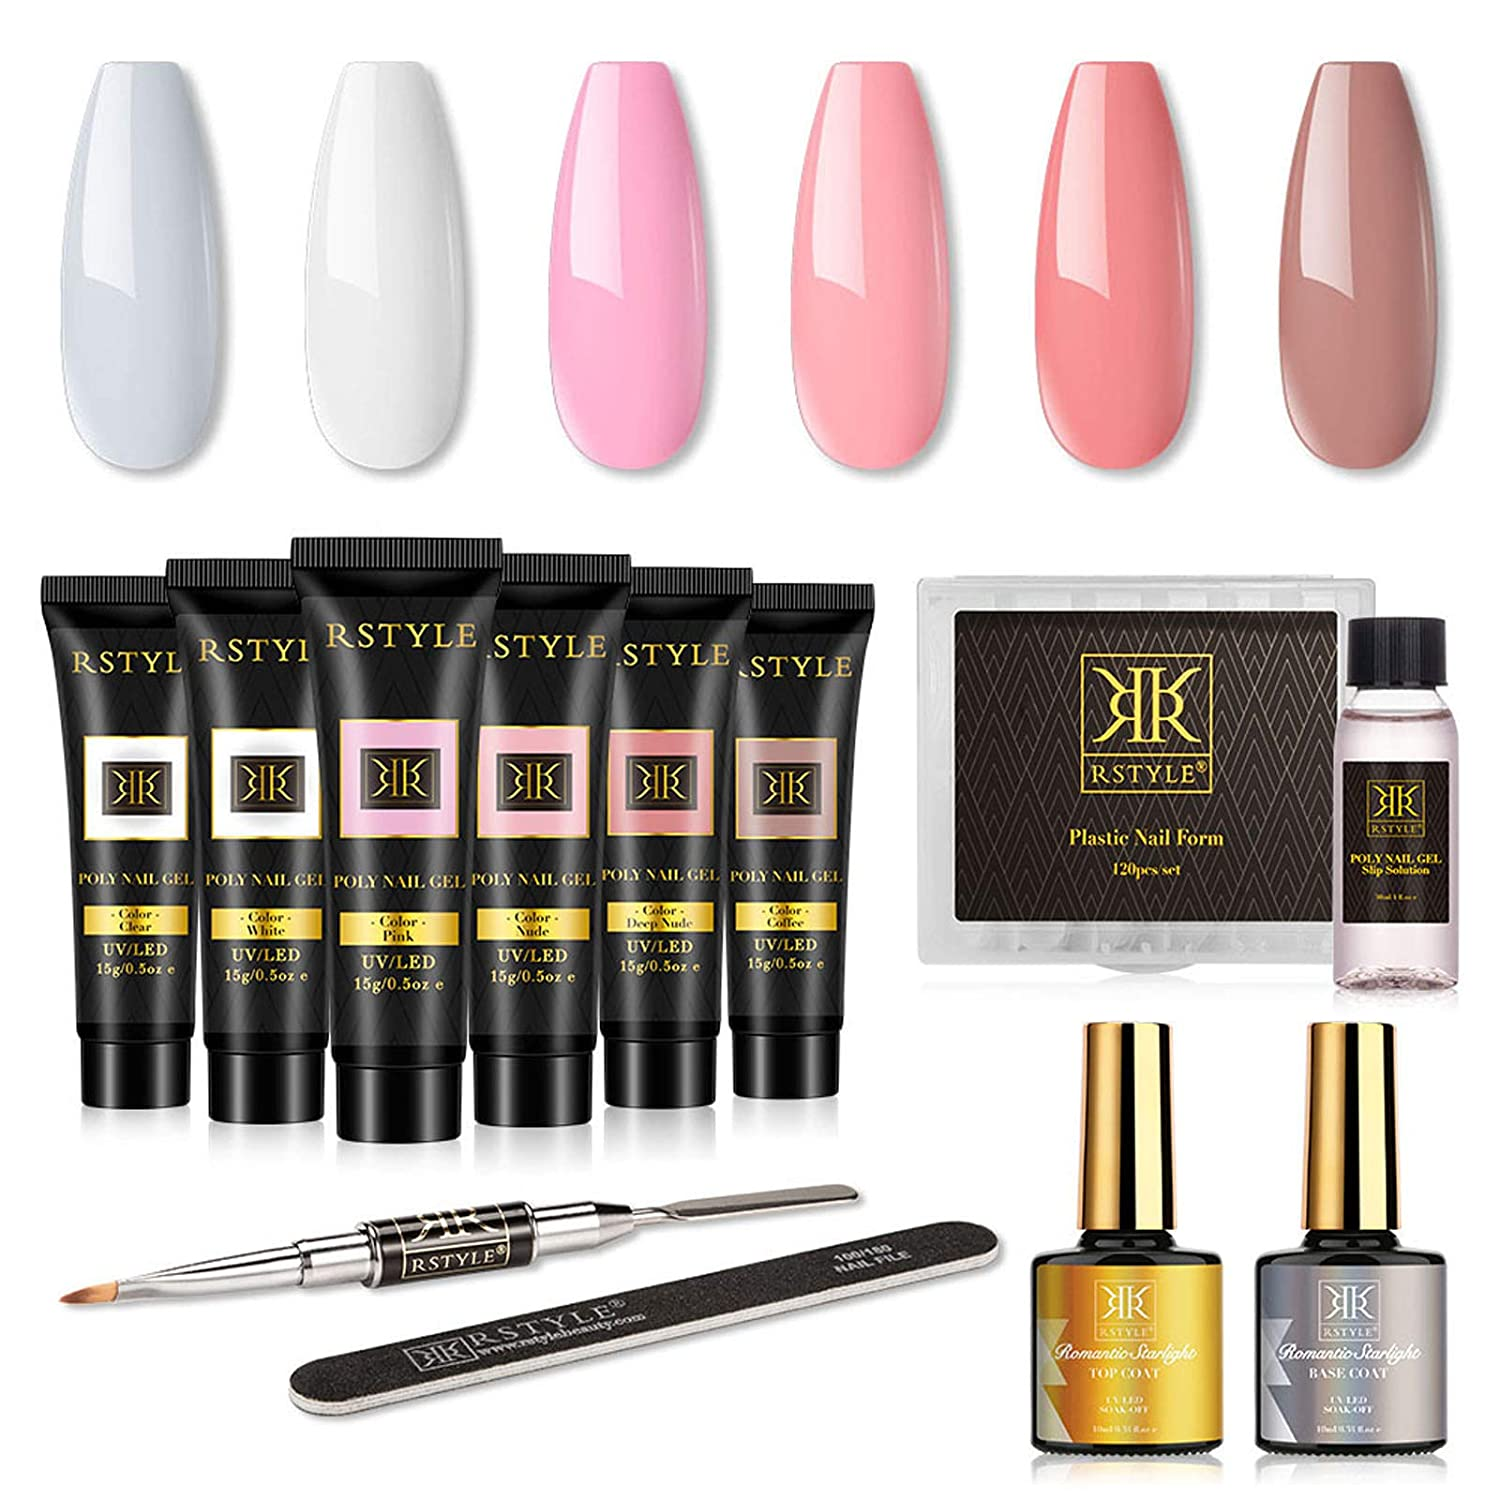 RSTYLE Poly Gel Nail Kit, 6 Poly Gel Colors Nail Extension Builder Gel Kit with Slip Solution Top and Base Coat French Manicure Kit for Beginner DIY at Home in Gift Box